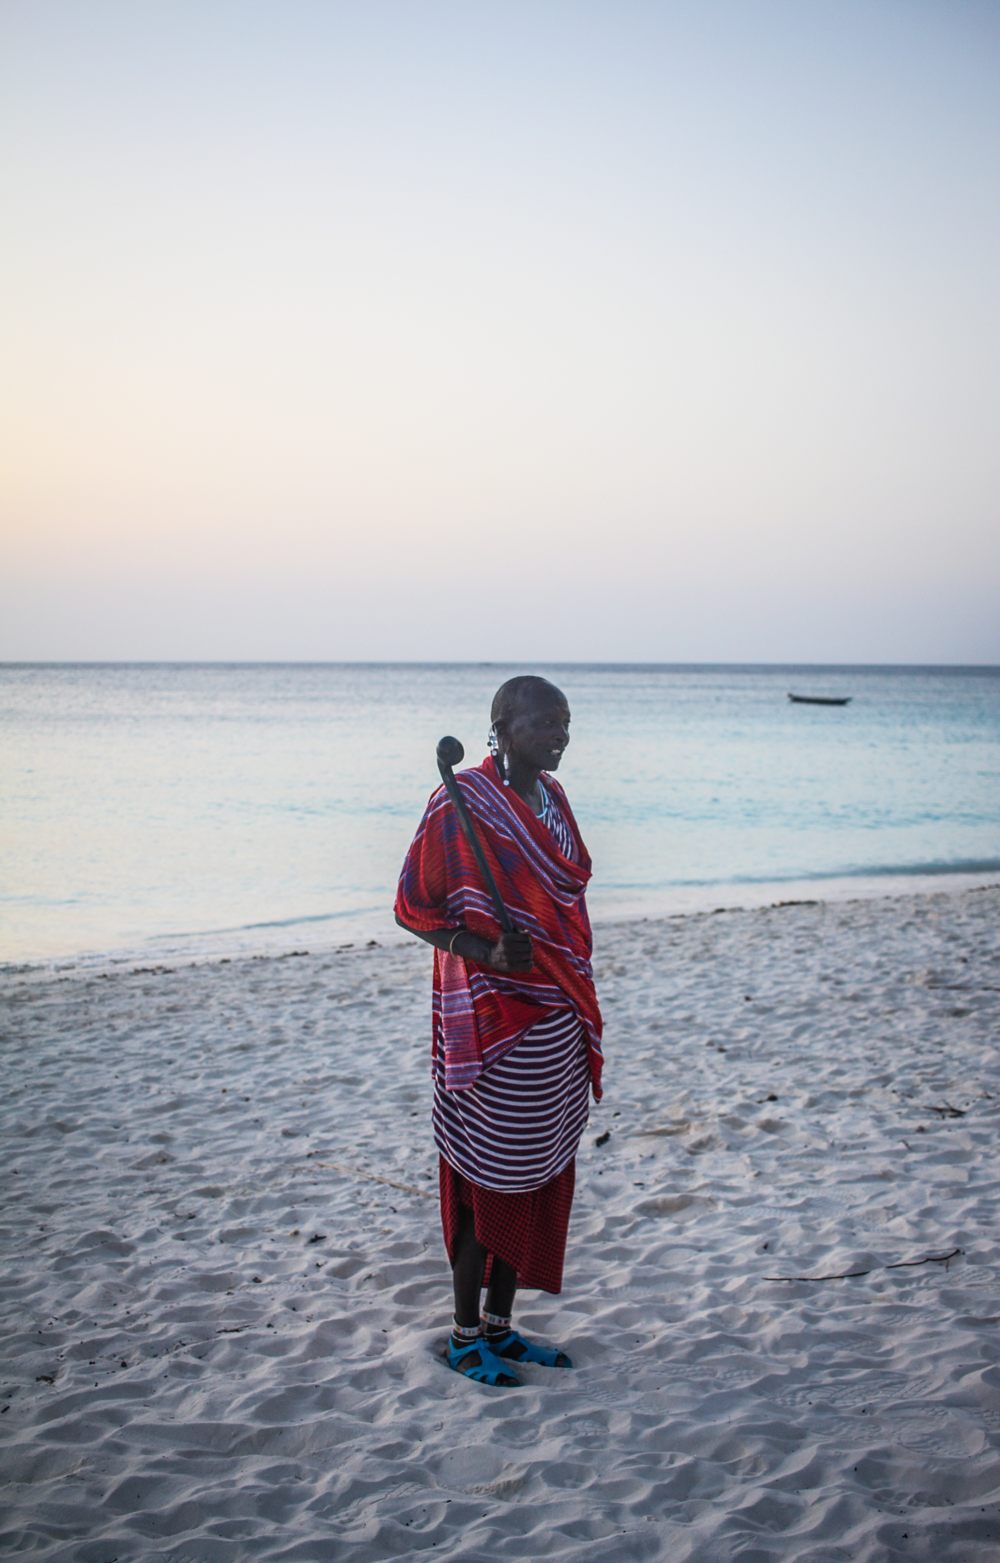 Zanzibar Tanzania | How Far From Home